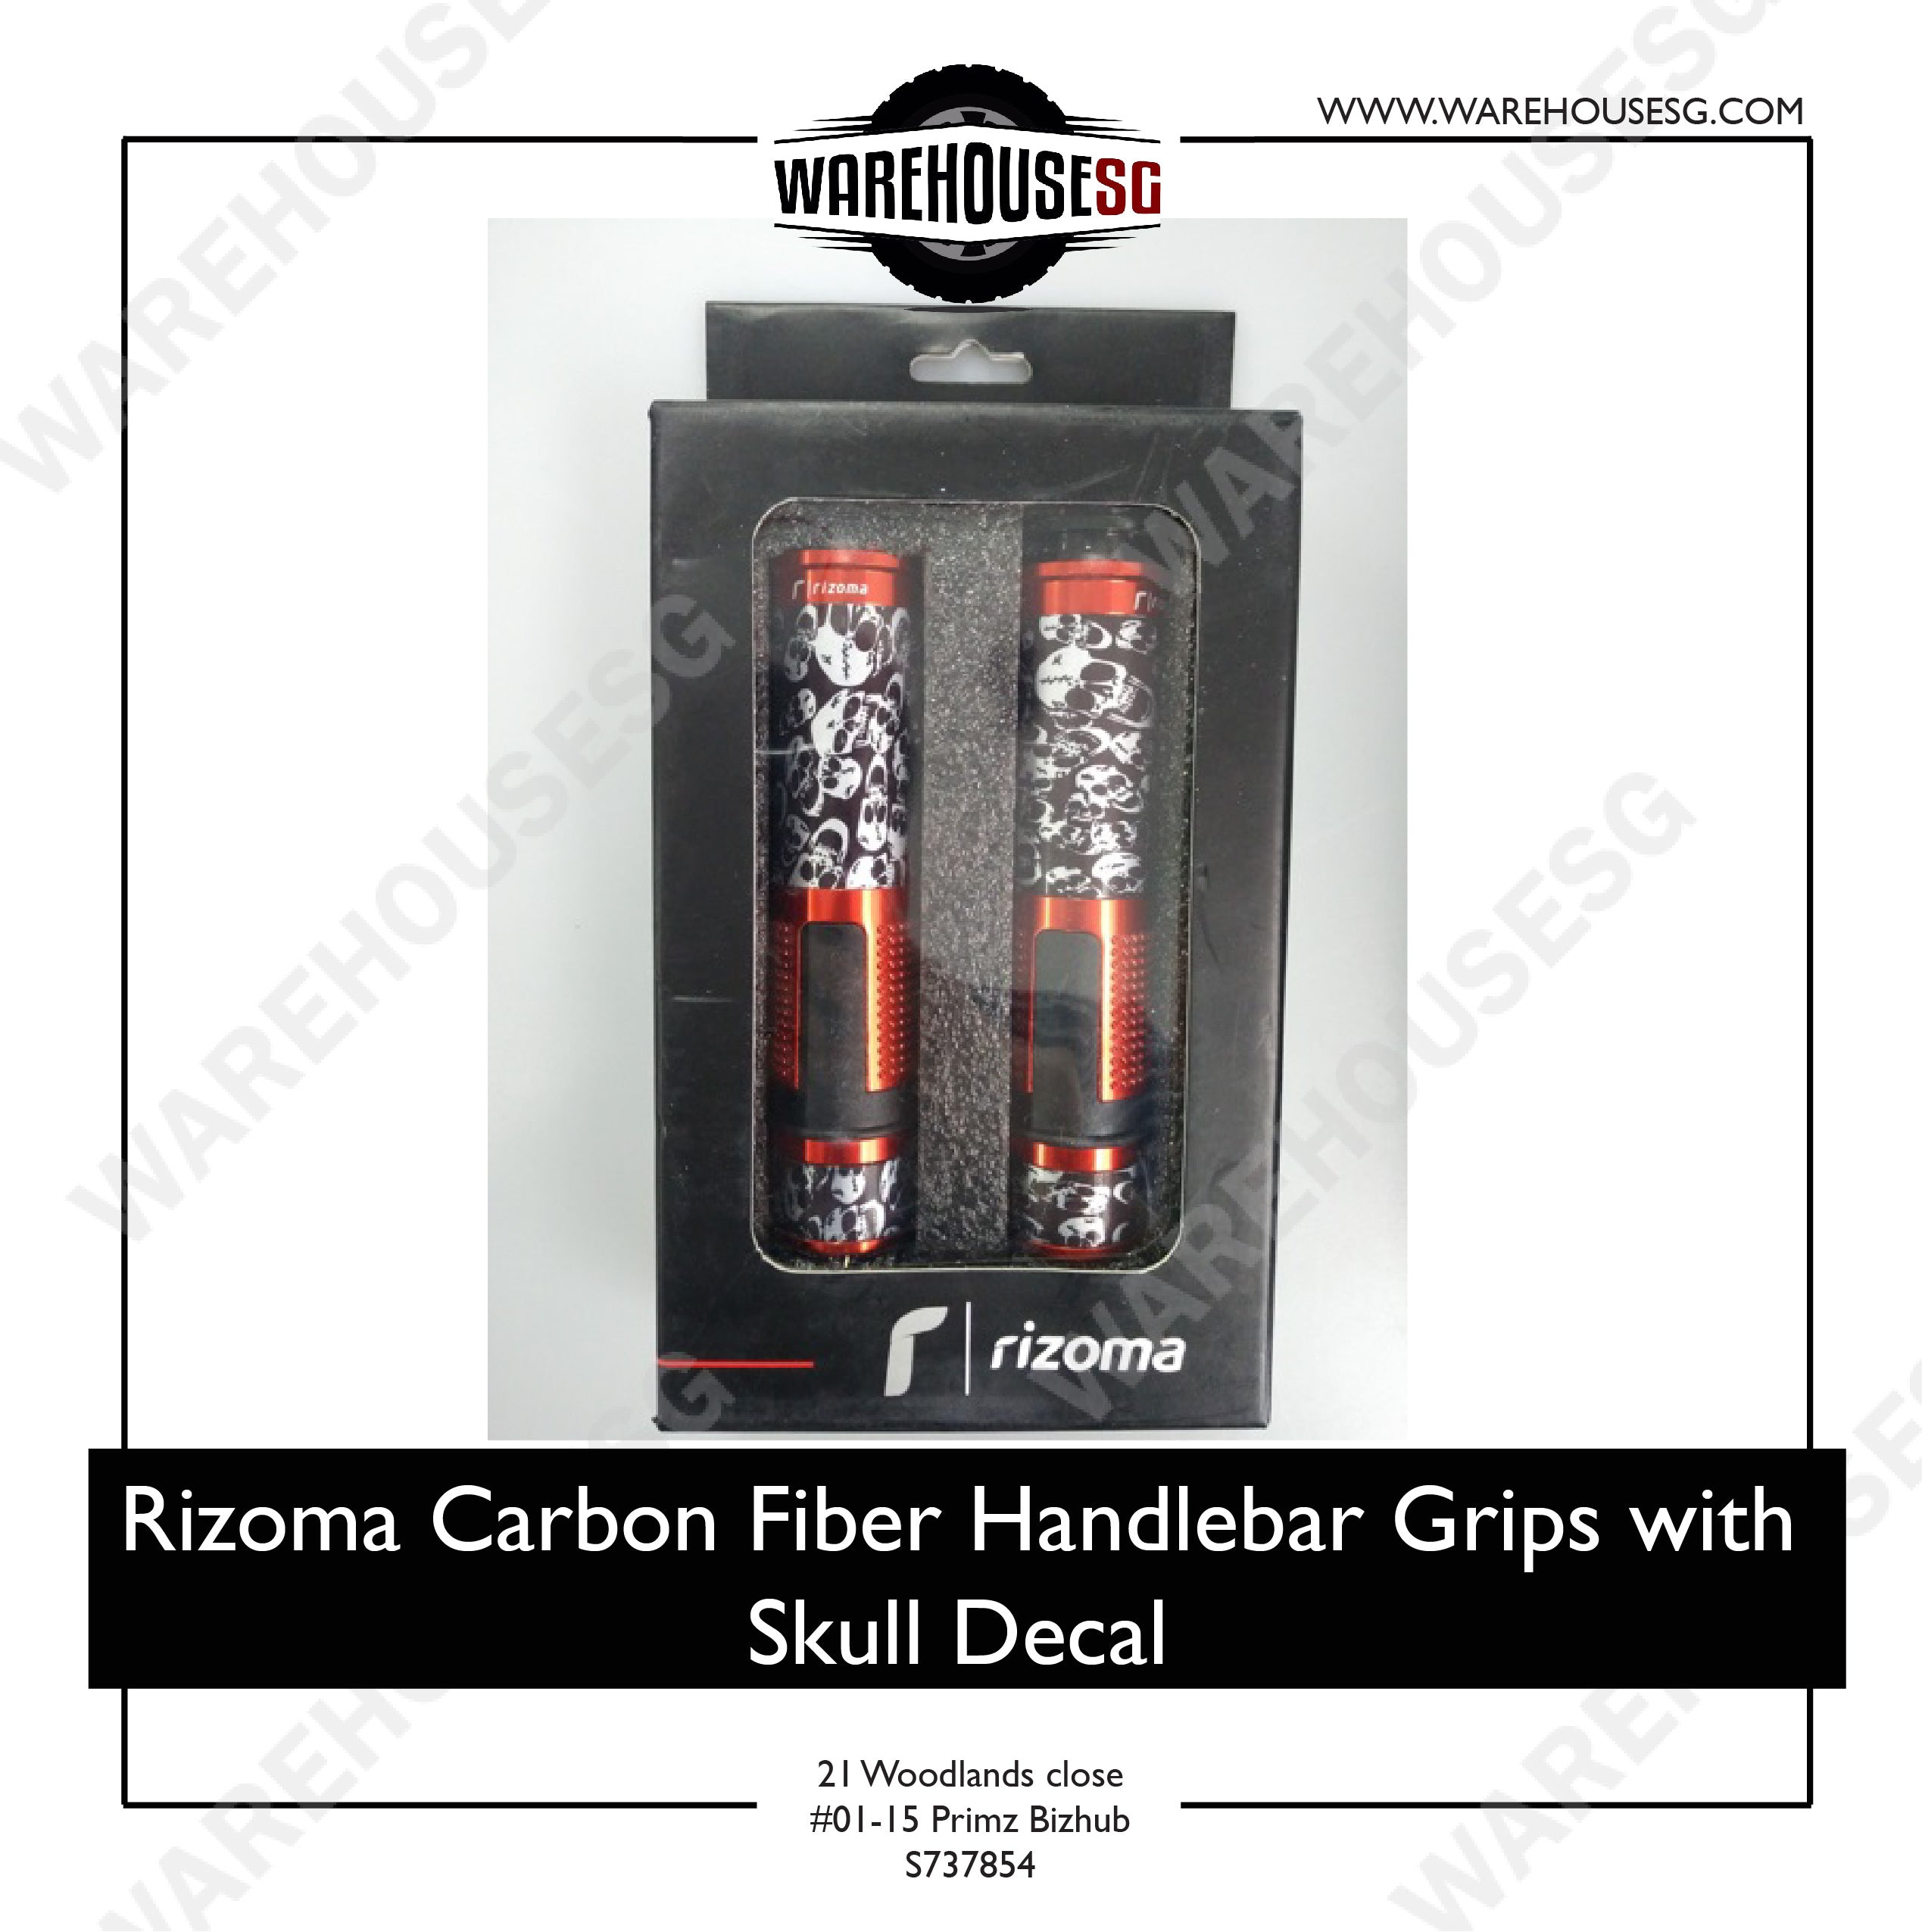 Rizoma Carbon Fiber Handlebar Grips with Skull Decal